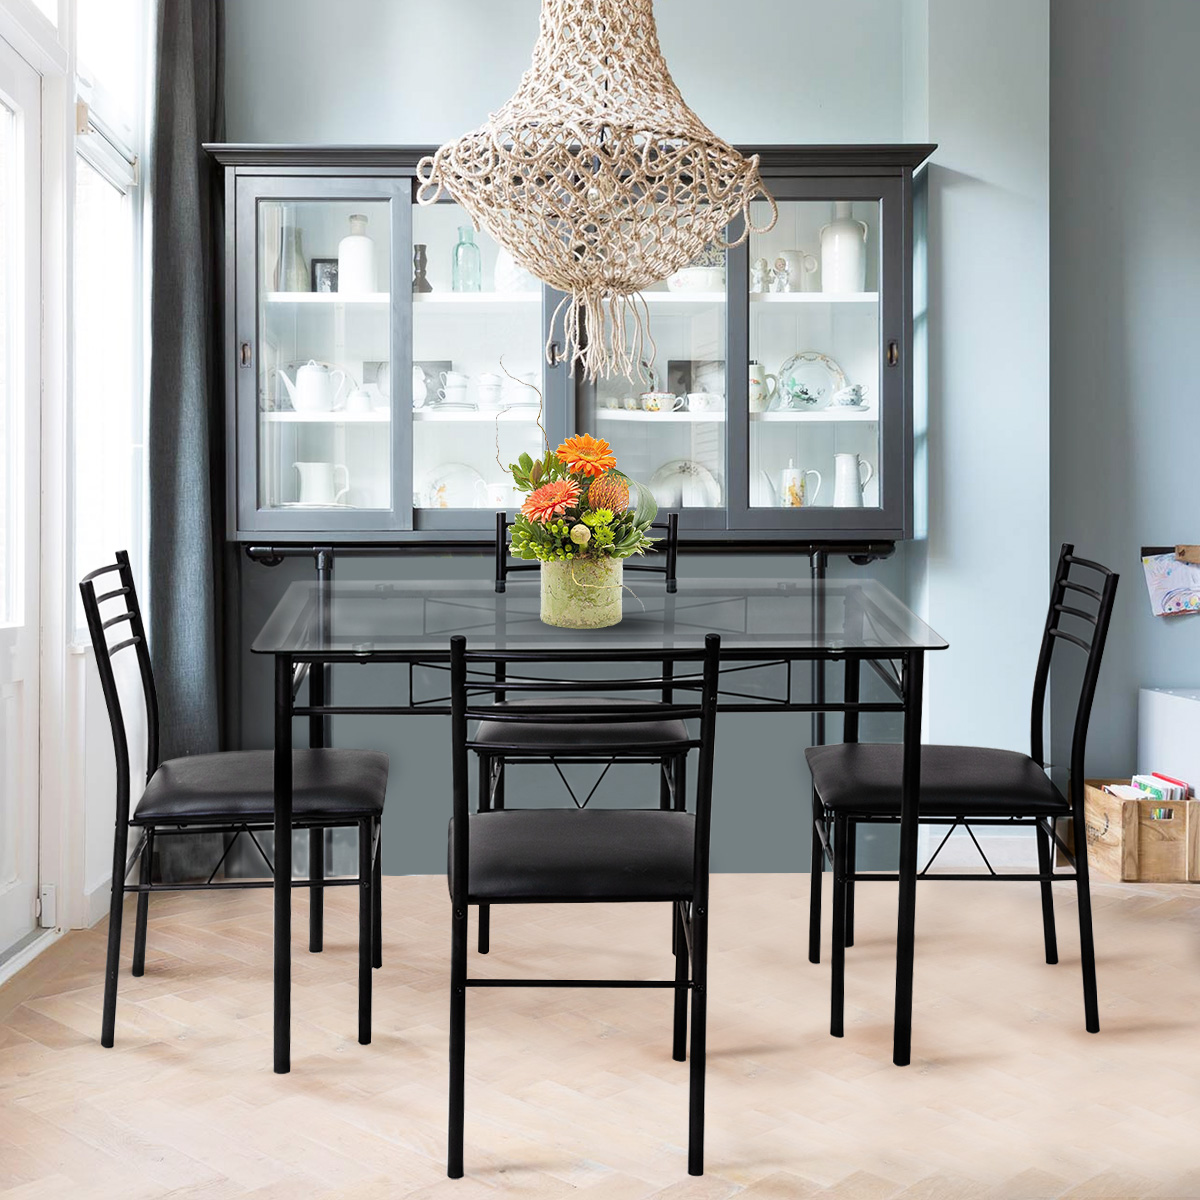 Gymax 5 Piece Dining Set Glass Top Table & 4 Upholstered Chairs...